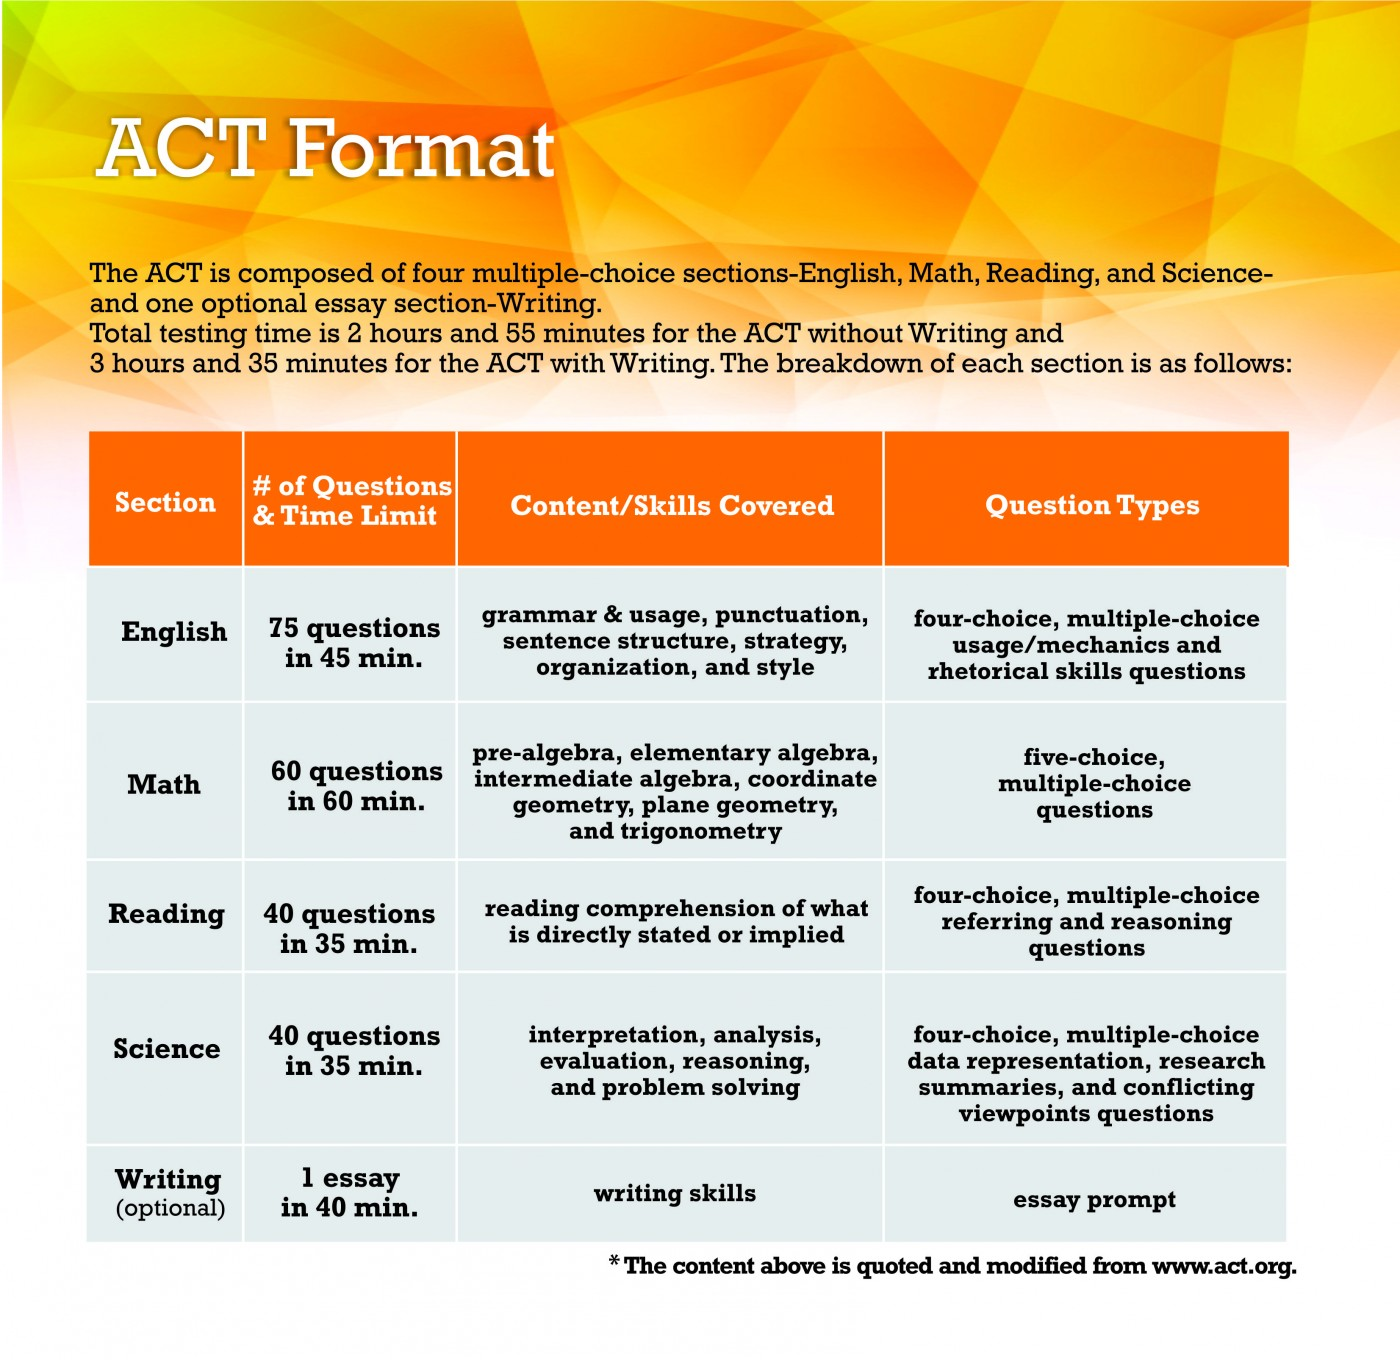 009 Act Format Essay Fearsome Rubric Tips Score Distribution 1400